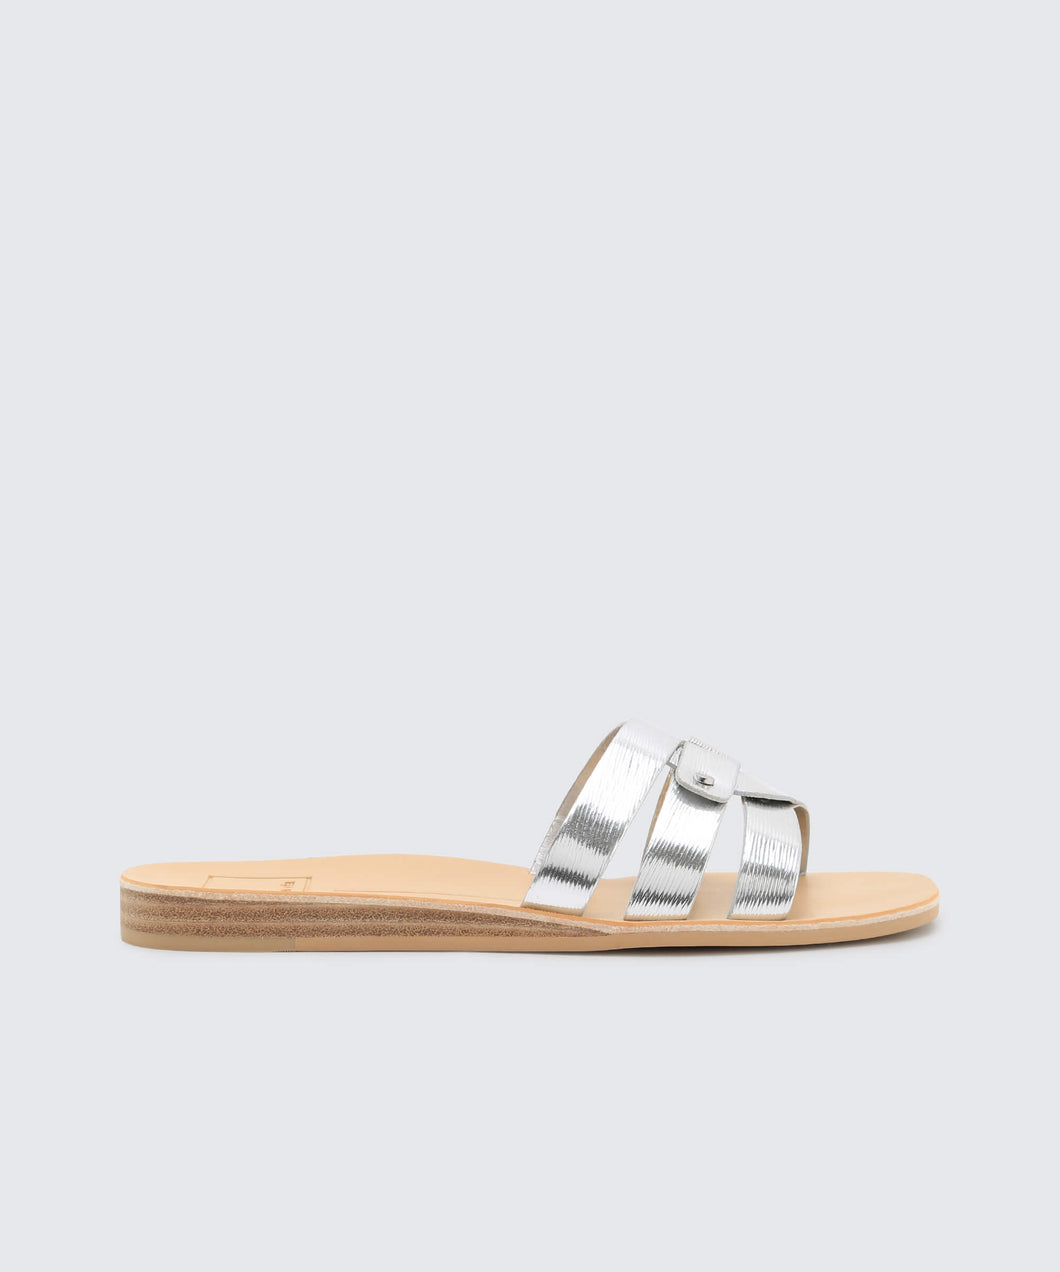 CAIT SANDALS IN ETCHED SILVER -   Dolce Vita